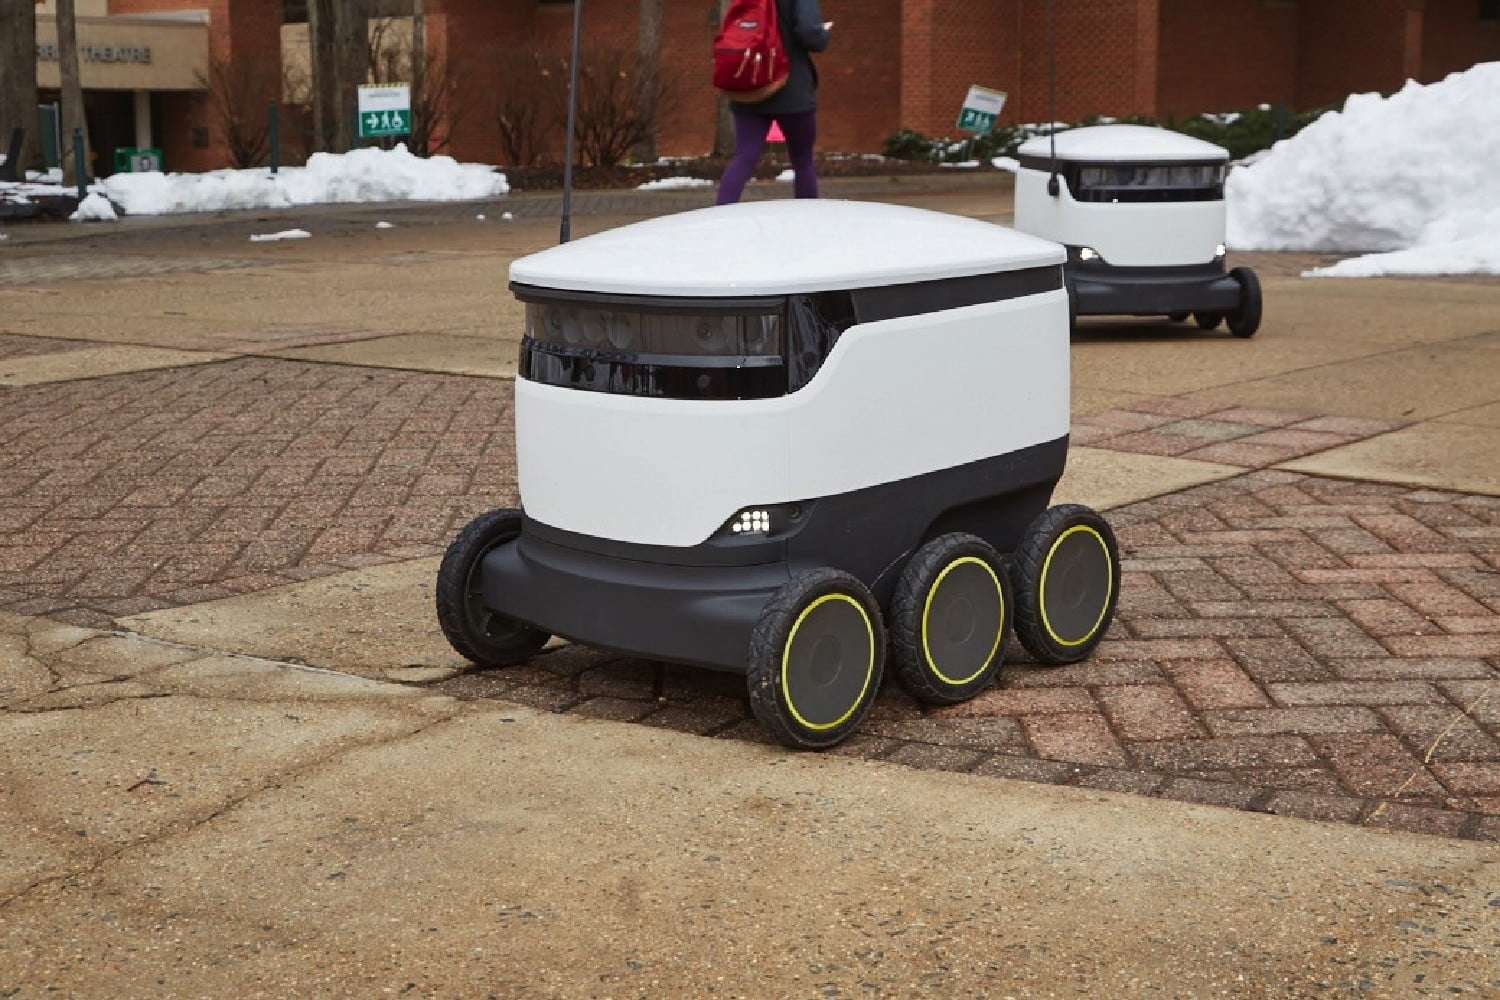 Self-driving meal machines are now feeding students at an Indiana college